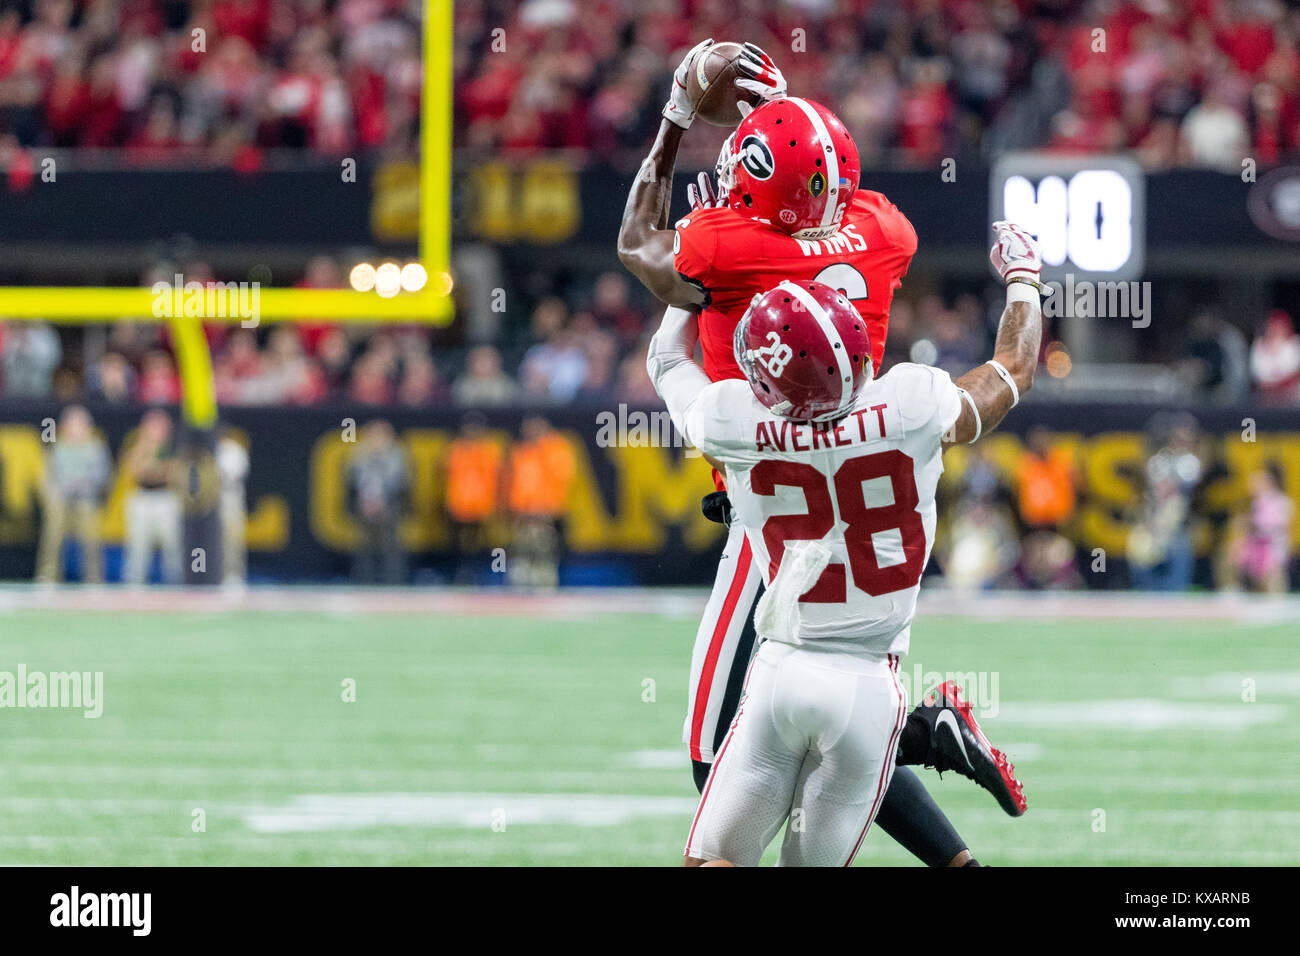 newest e66ca f9d9a Atlanta, GA, USA. 8th Jan, 2018. Georgia Bulldogs wide ...